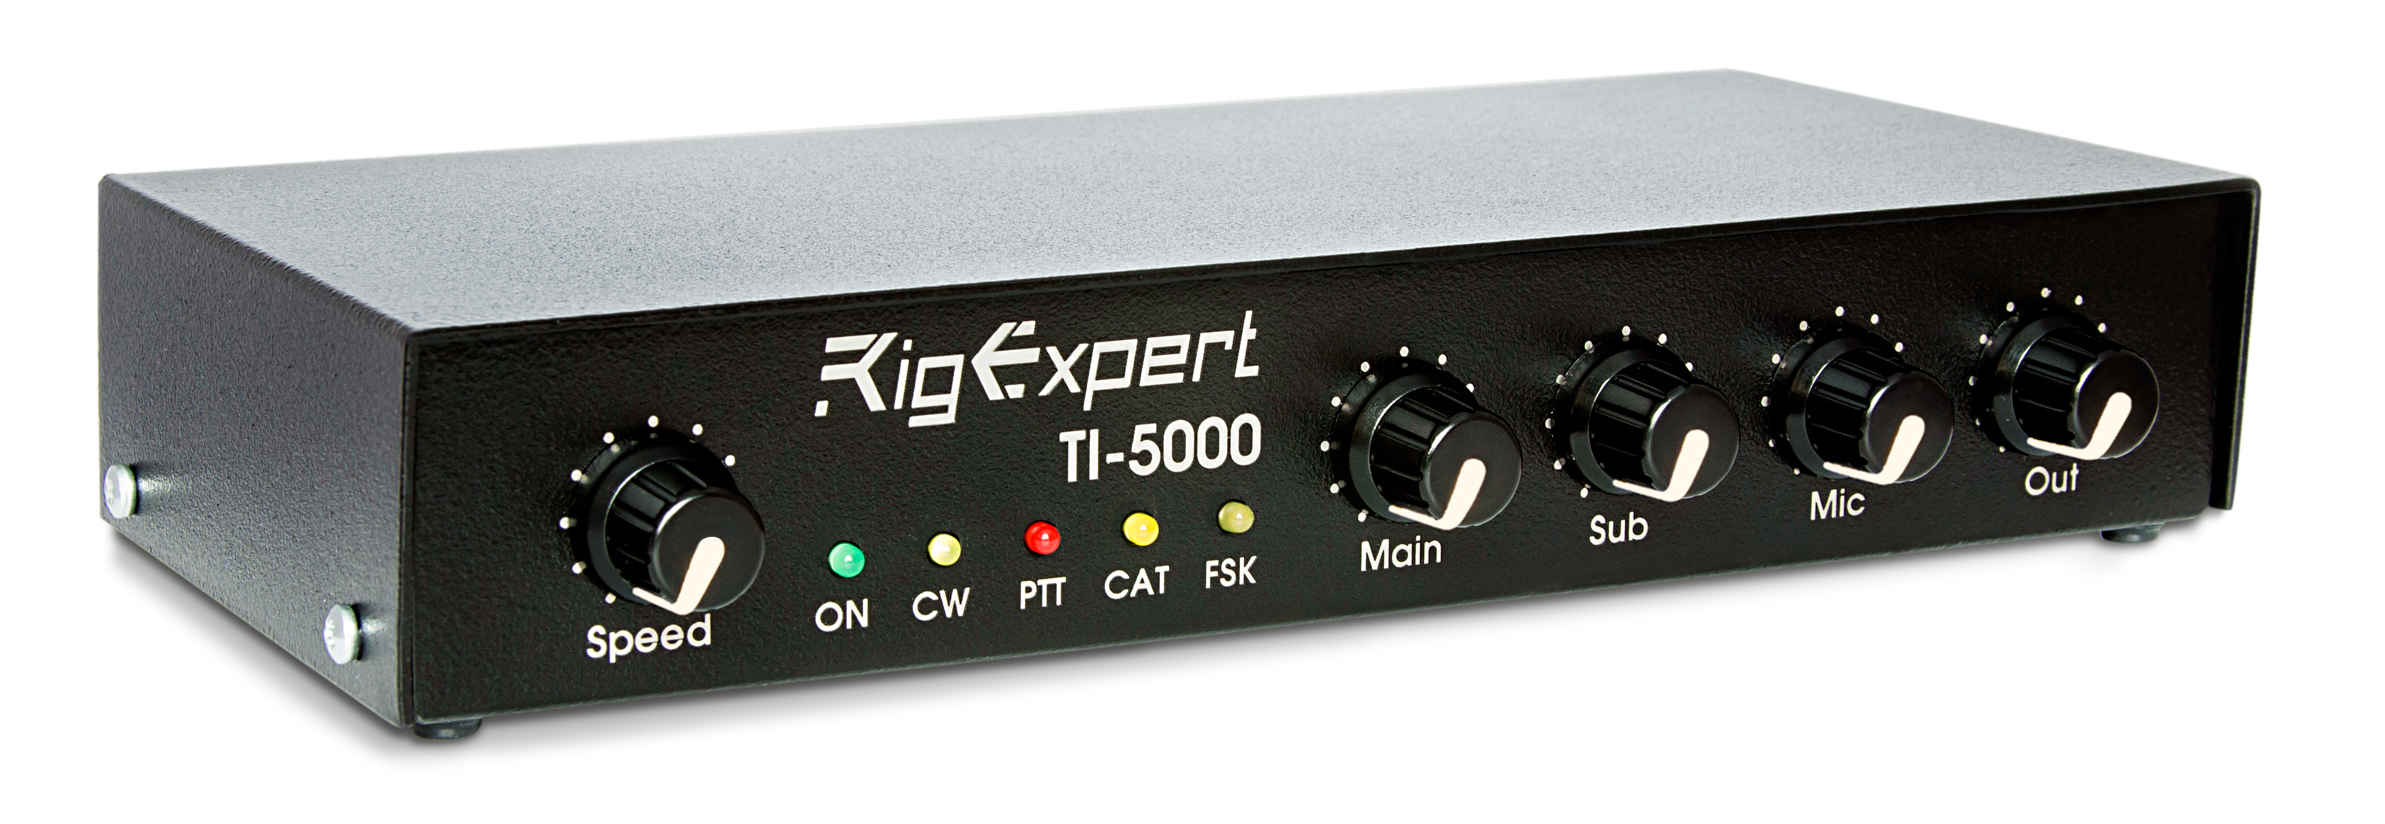 RIGEXPERT TI-5000 DIGI-INTERFACE